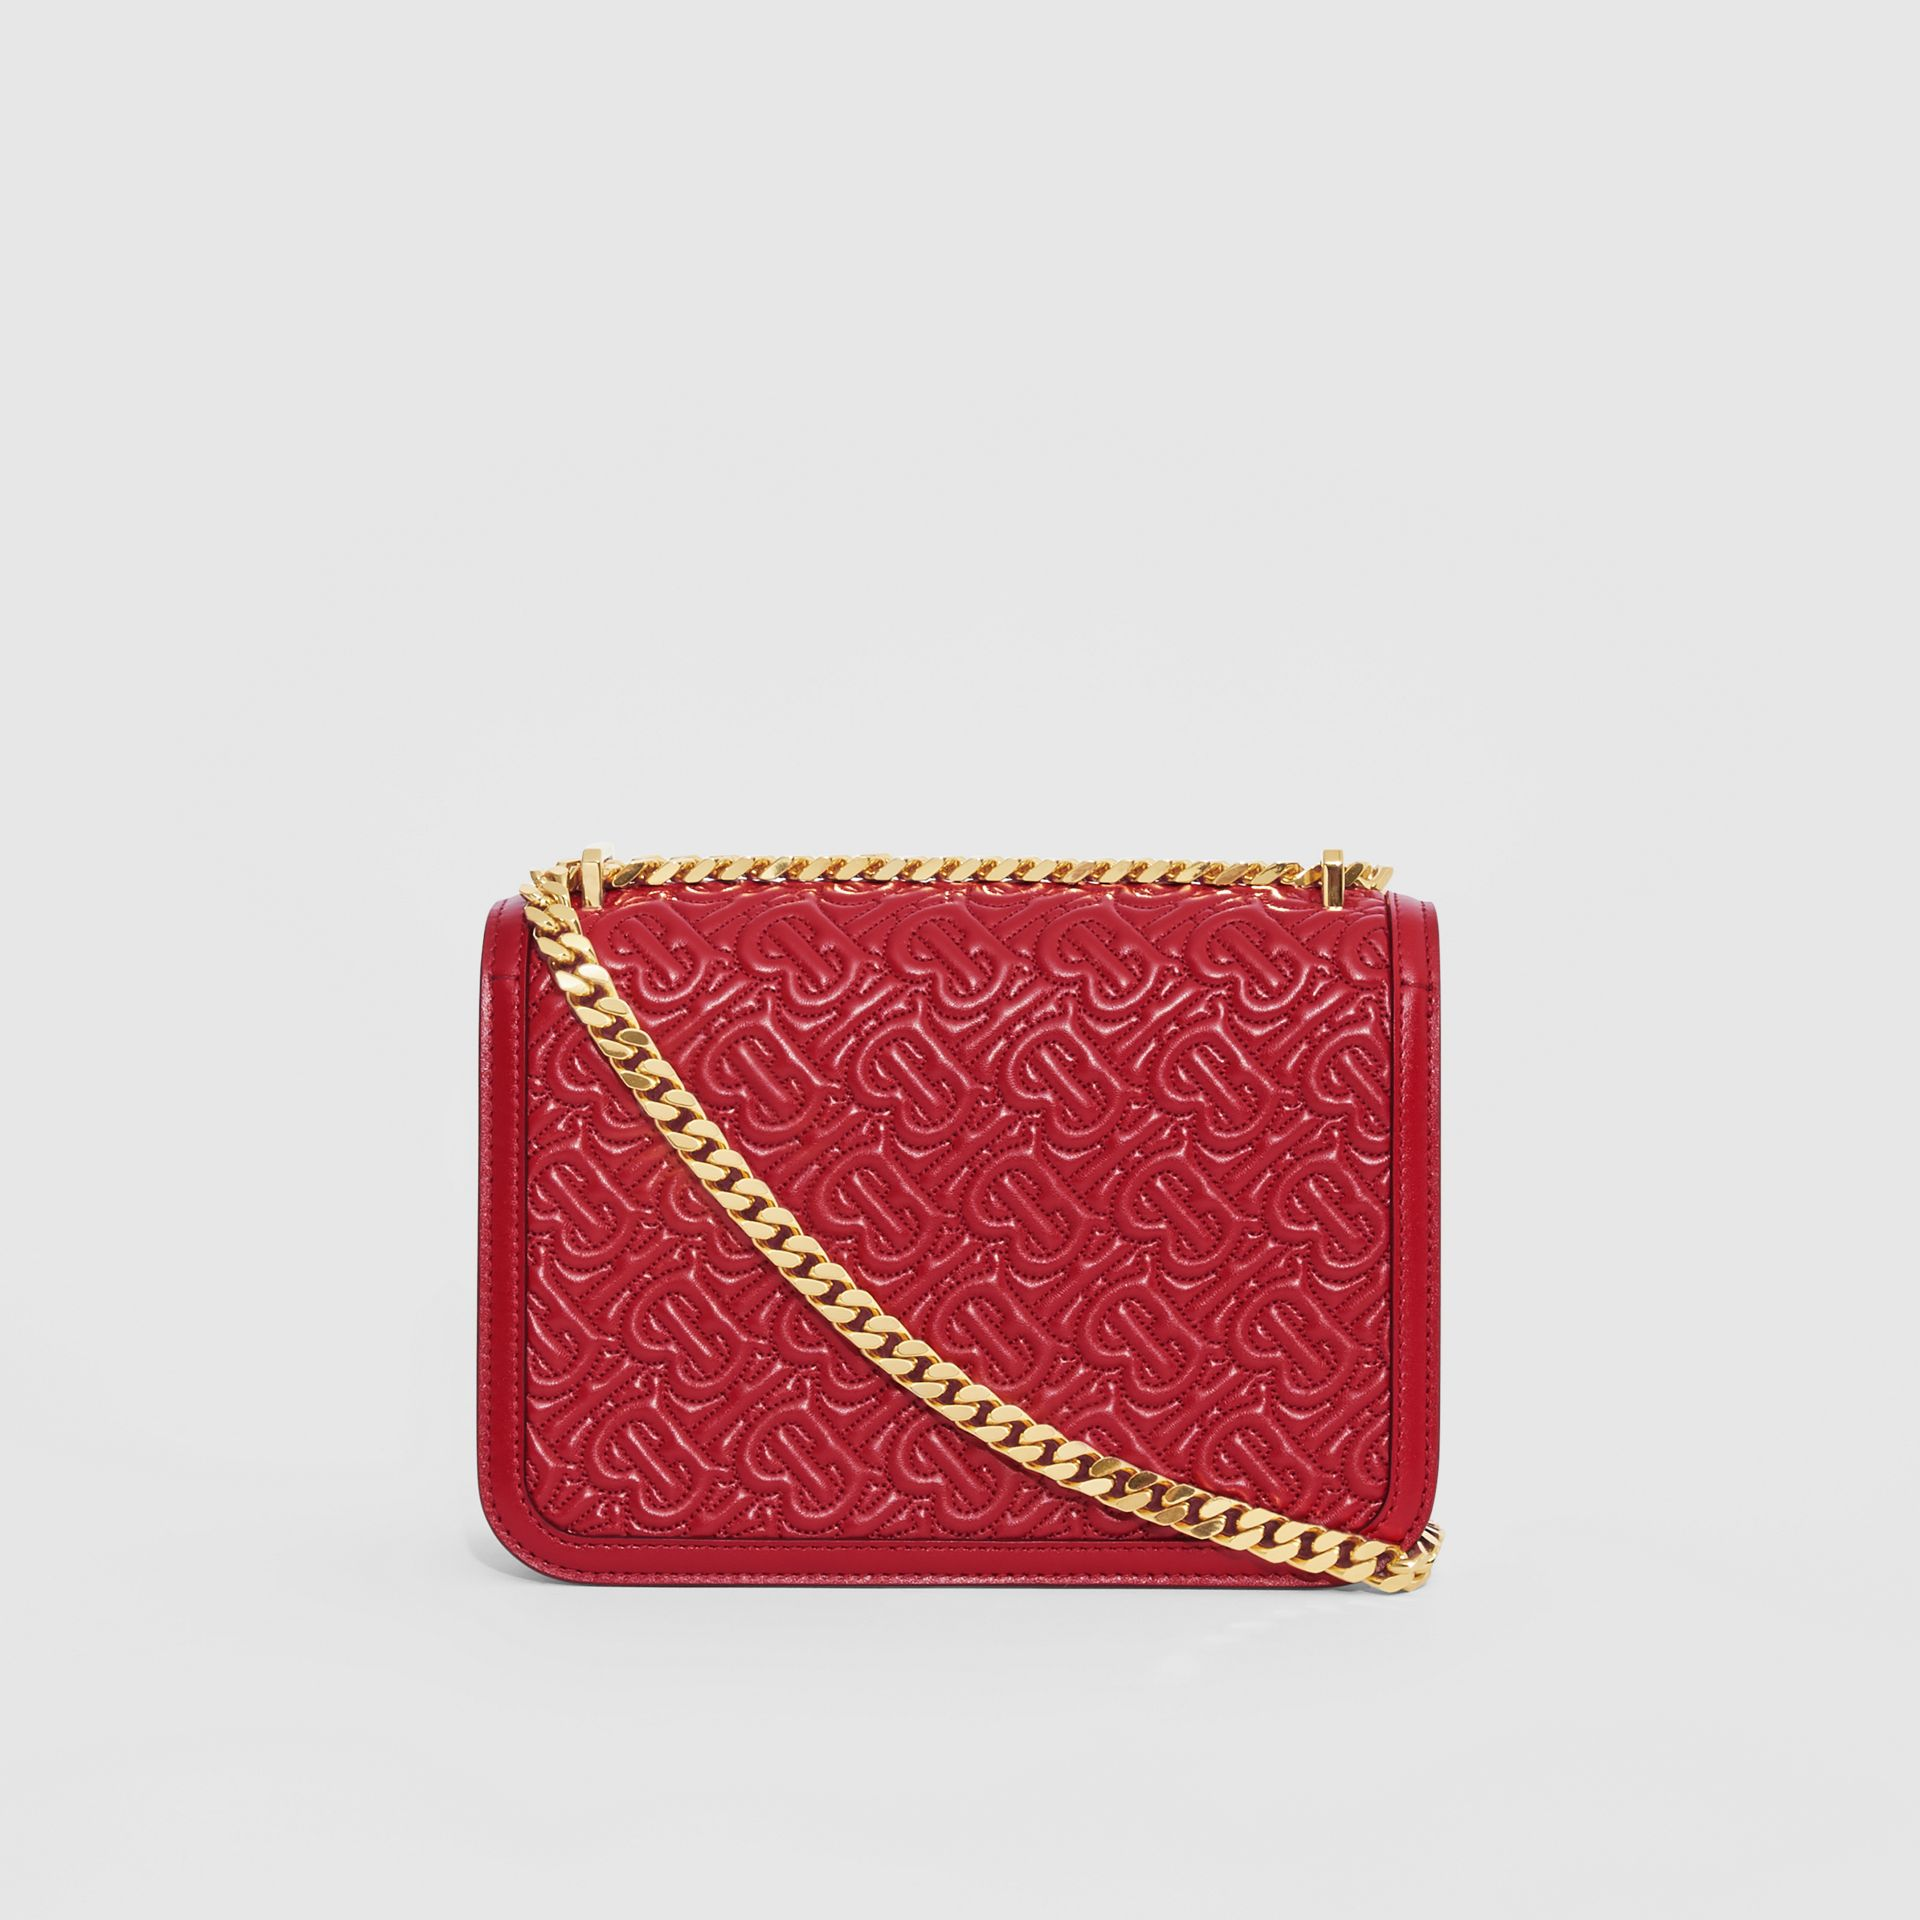 Small Quilted Monogram Lambskin TB Bag in Dark Carmine - Women | Burberry Hong Kong S.A.R. - gallery image 7